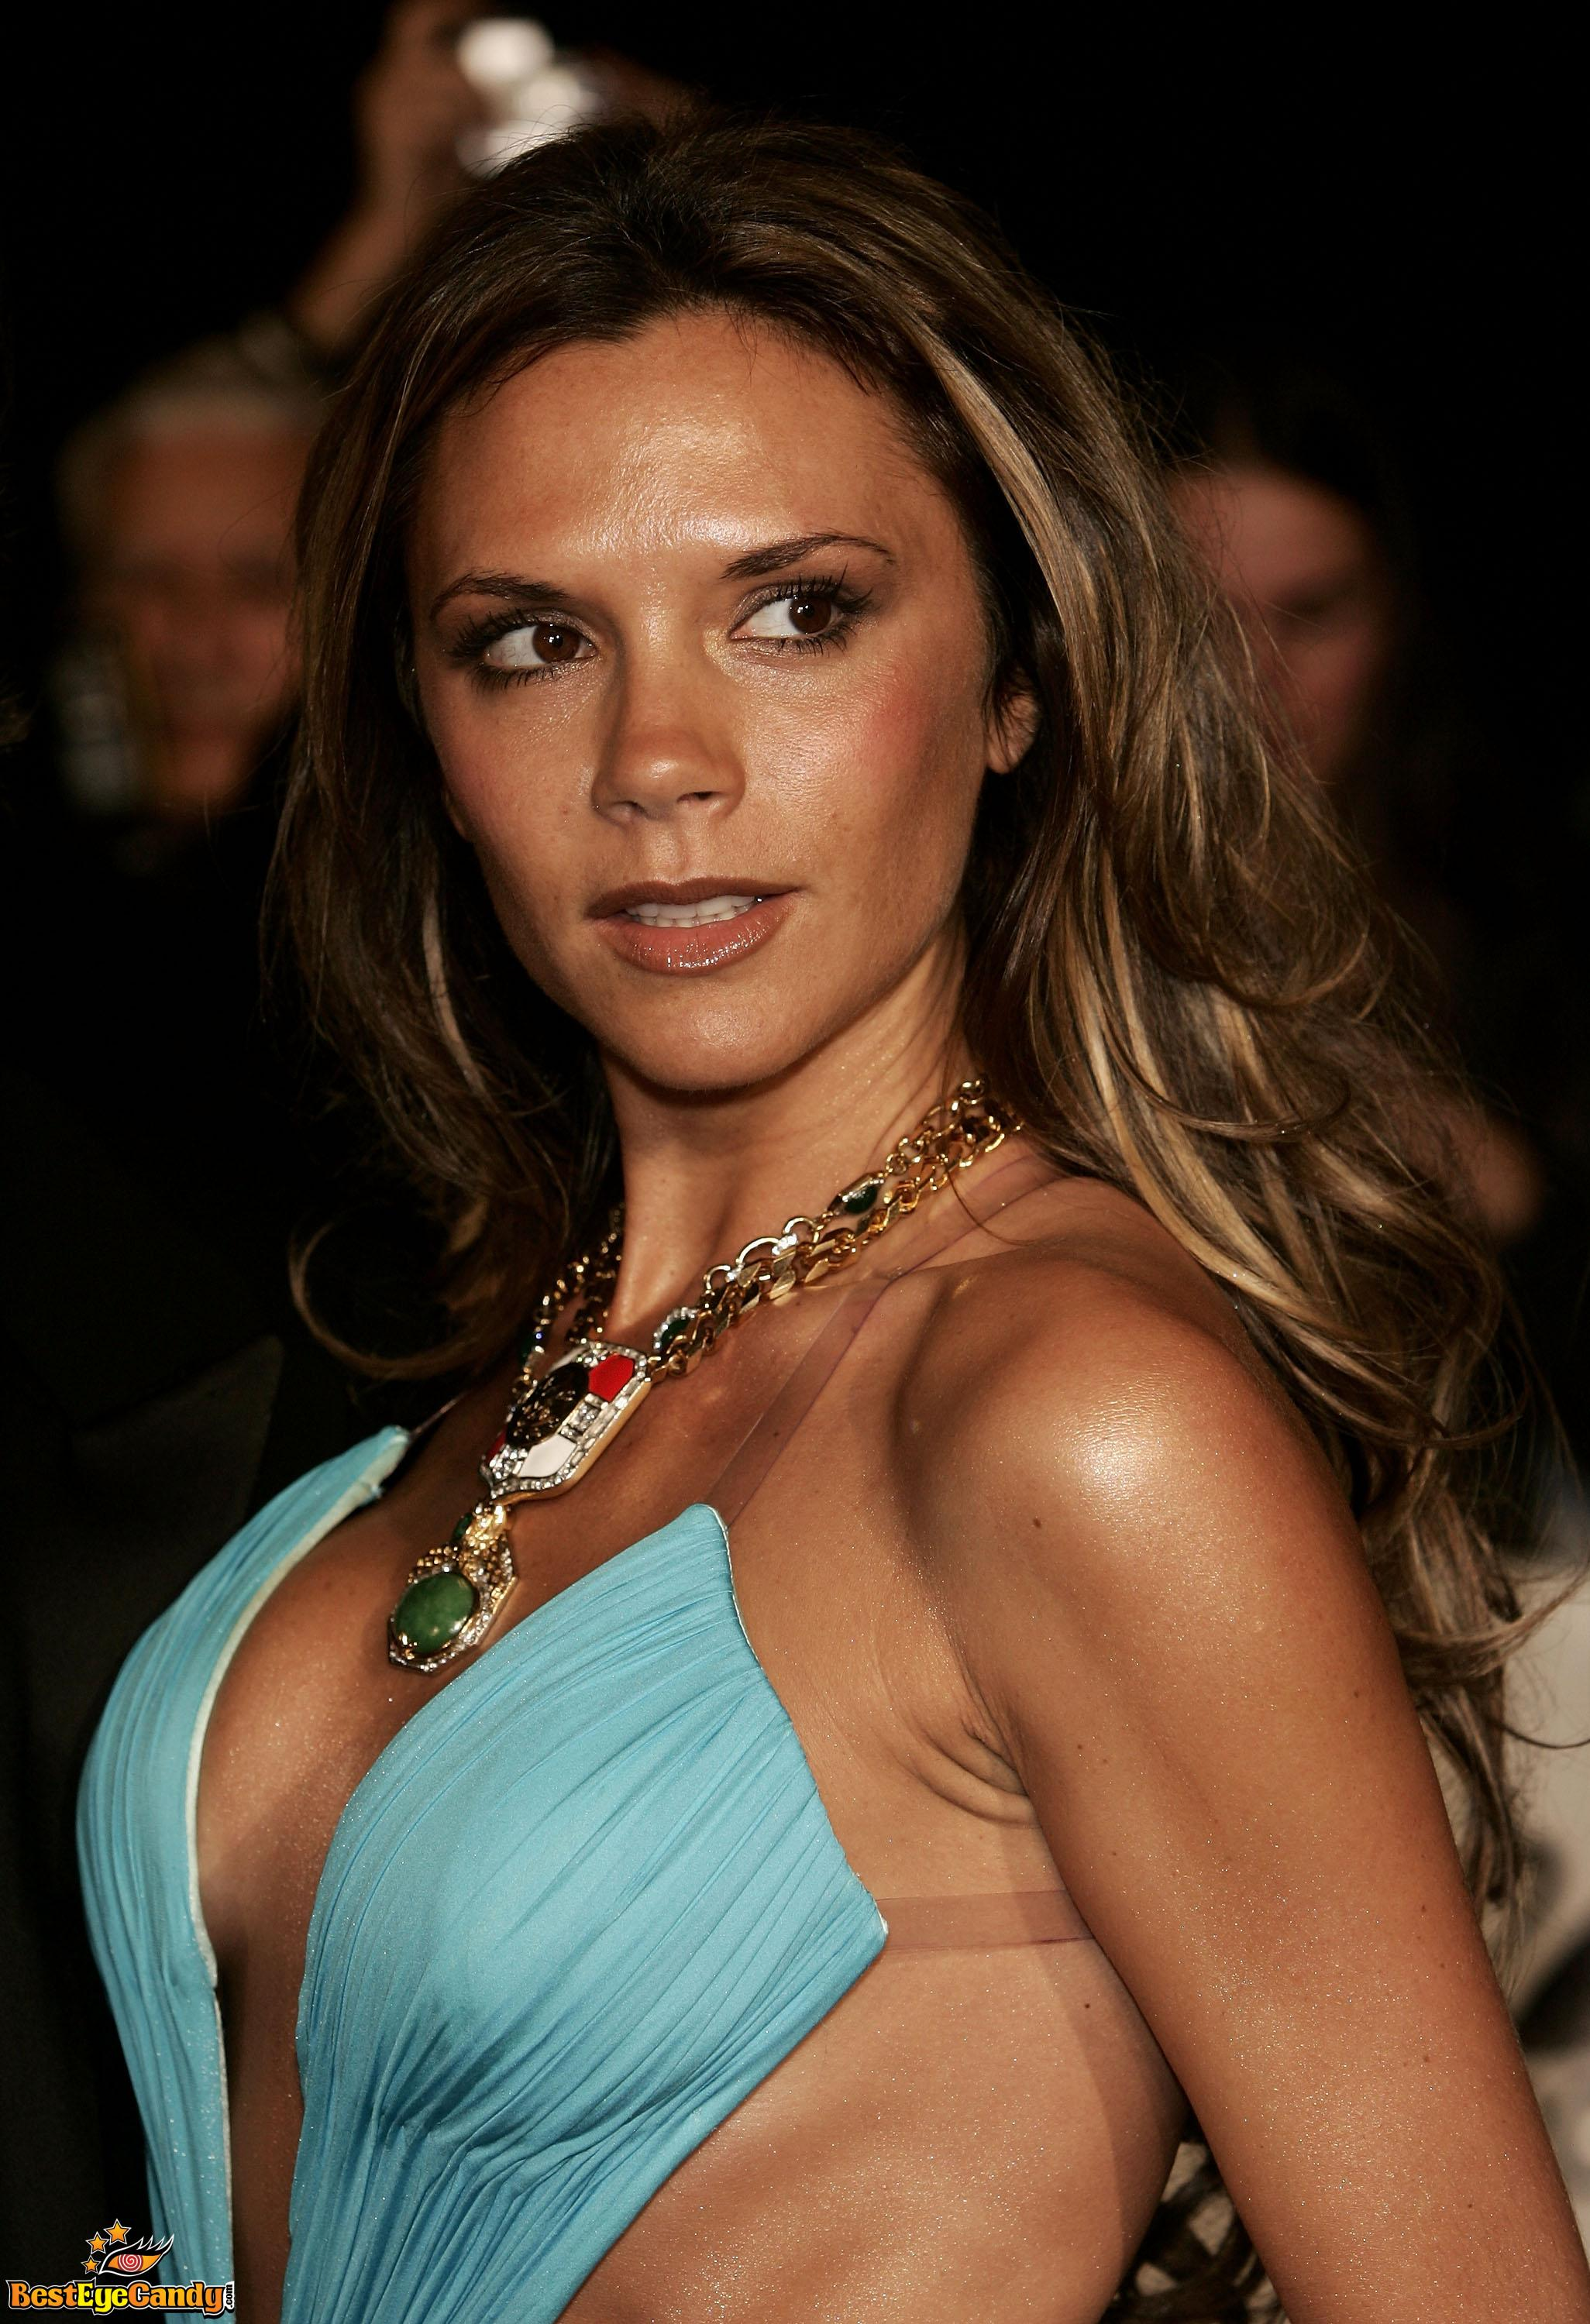 48 hot and sexy photos of Victoria Beckham will make you